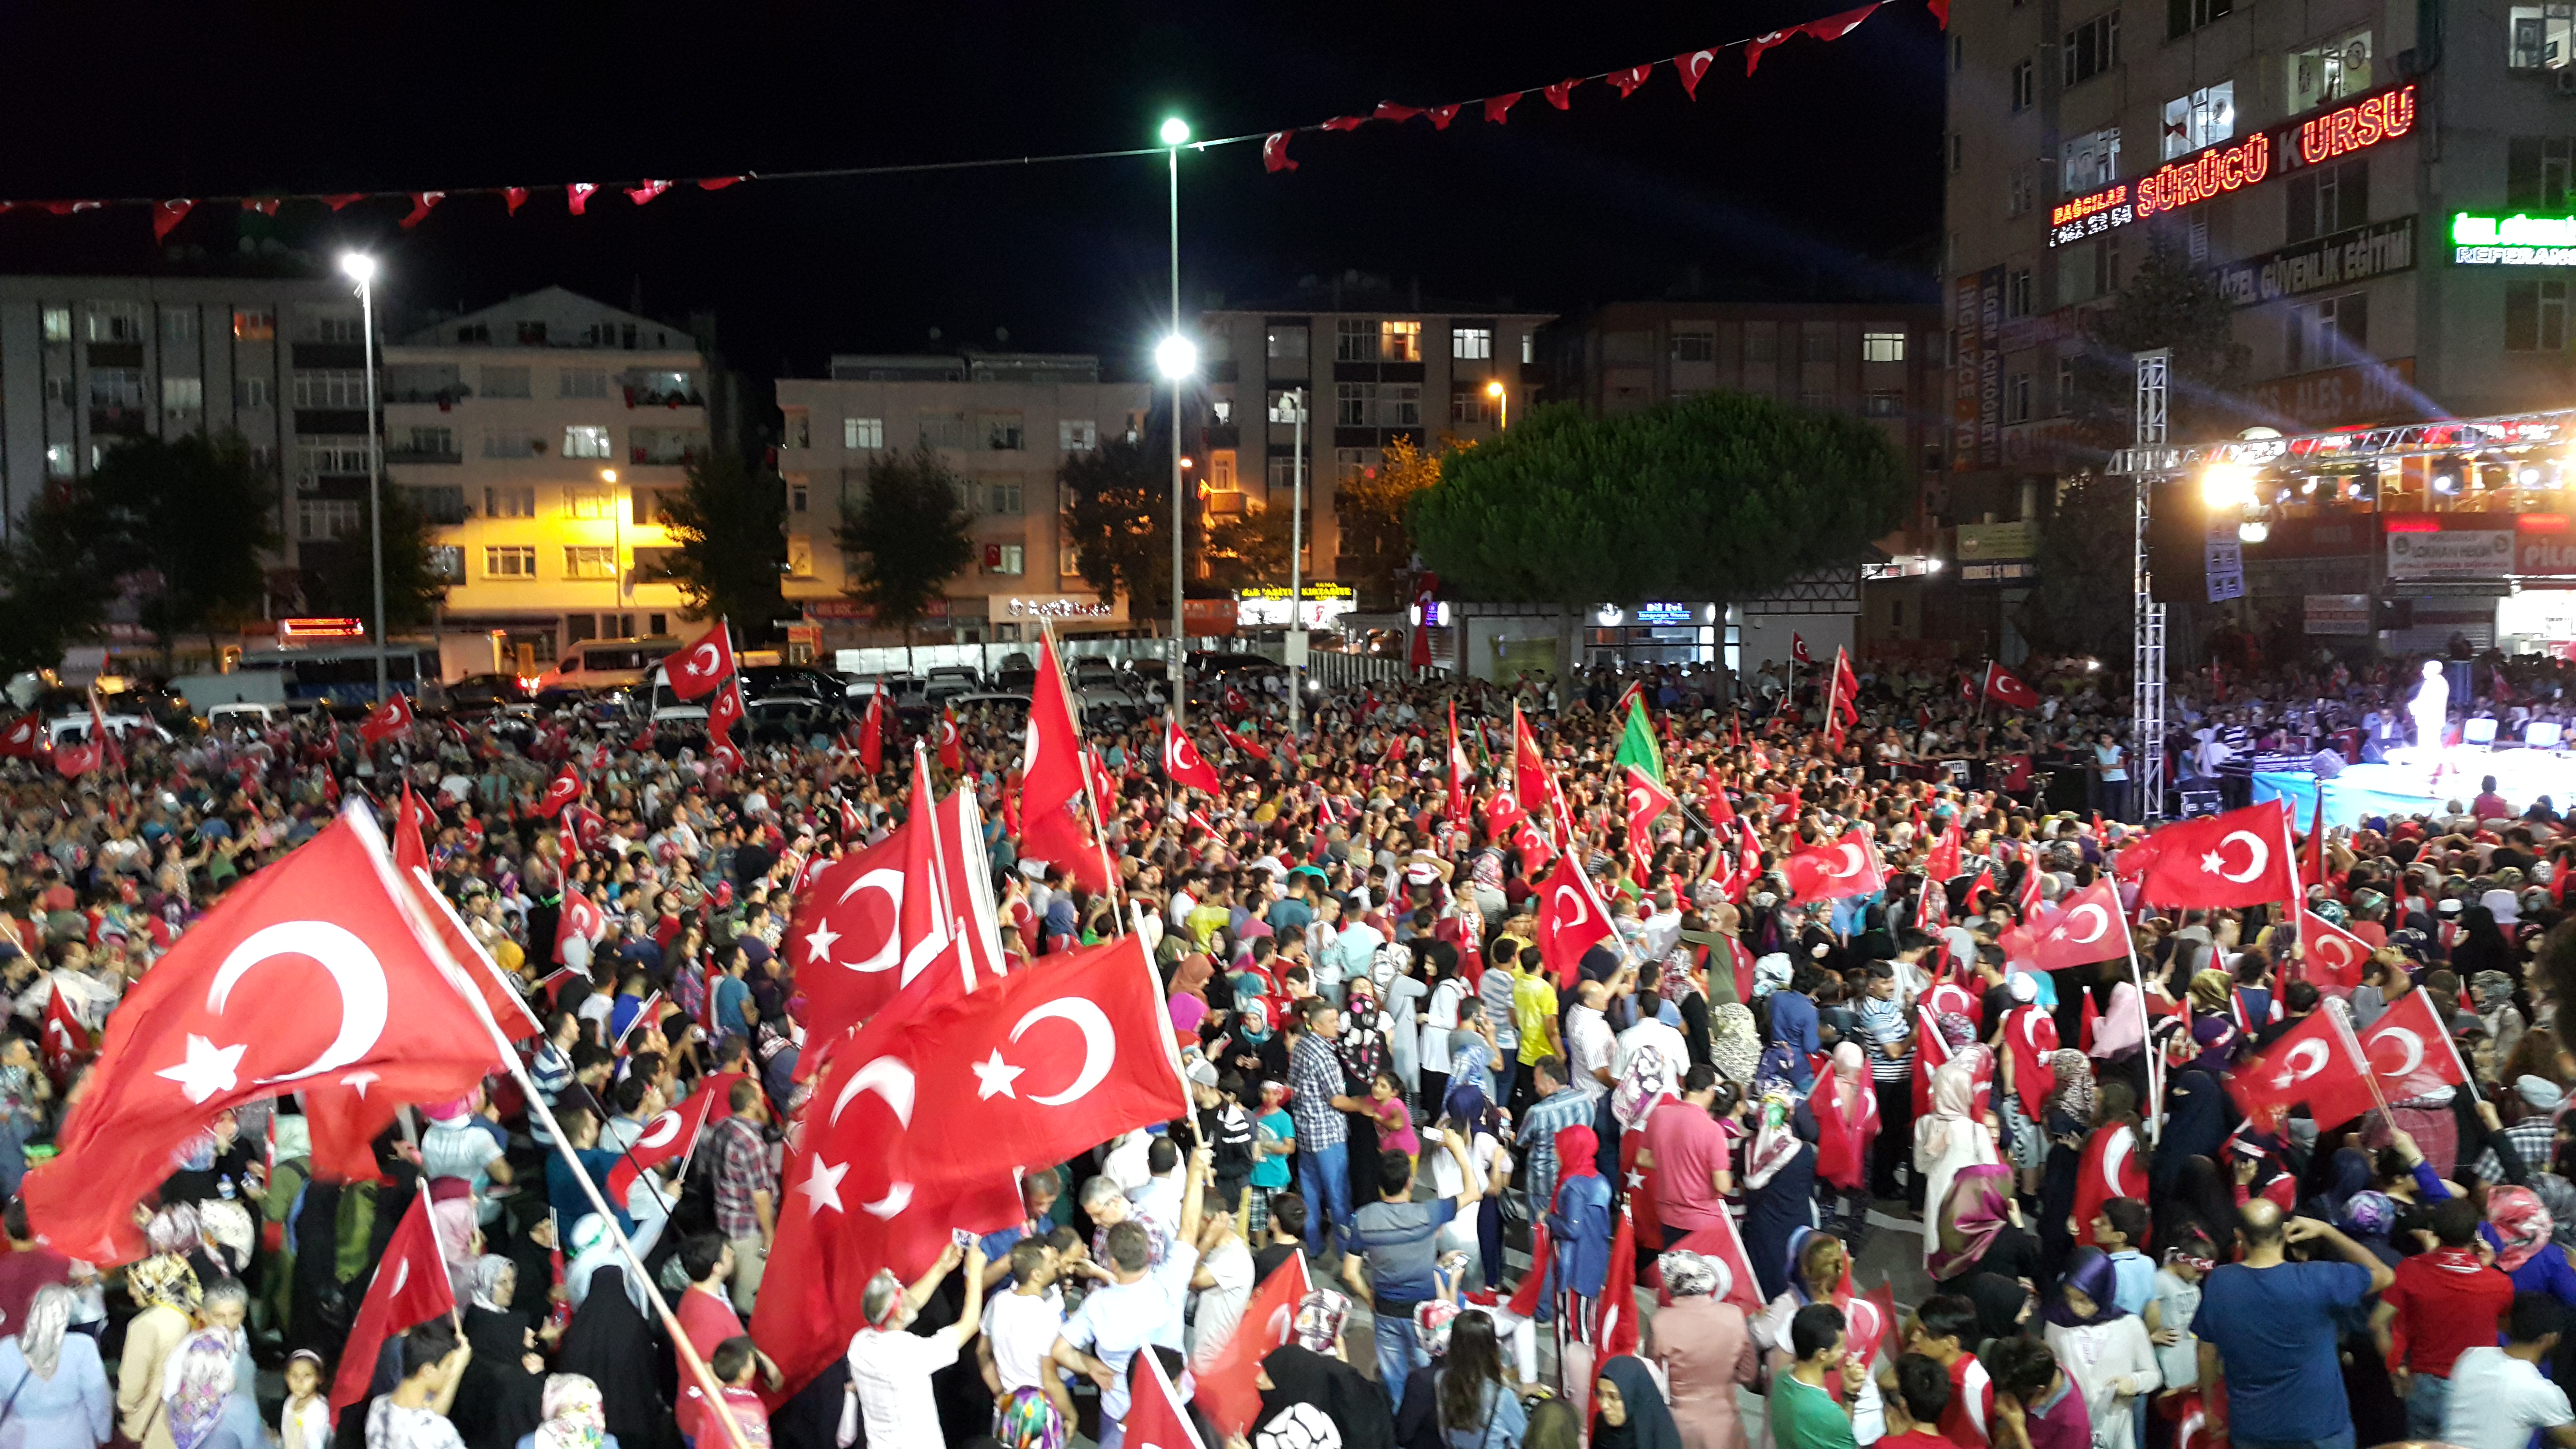 Celebrations after the failed coup in Turkey